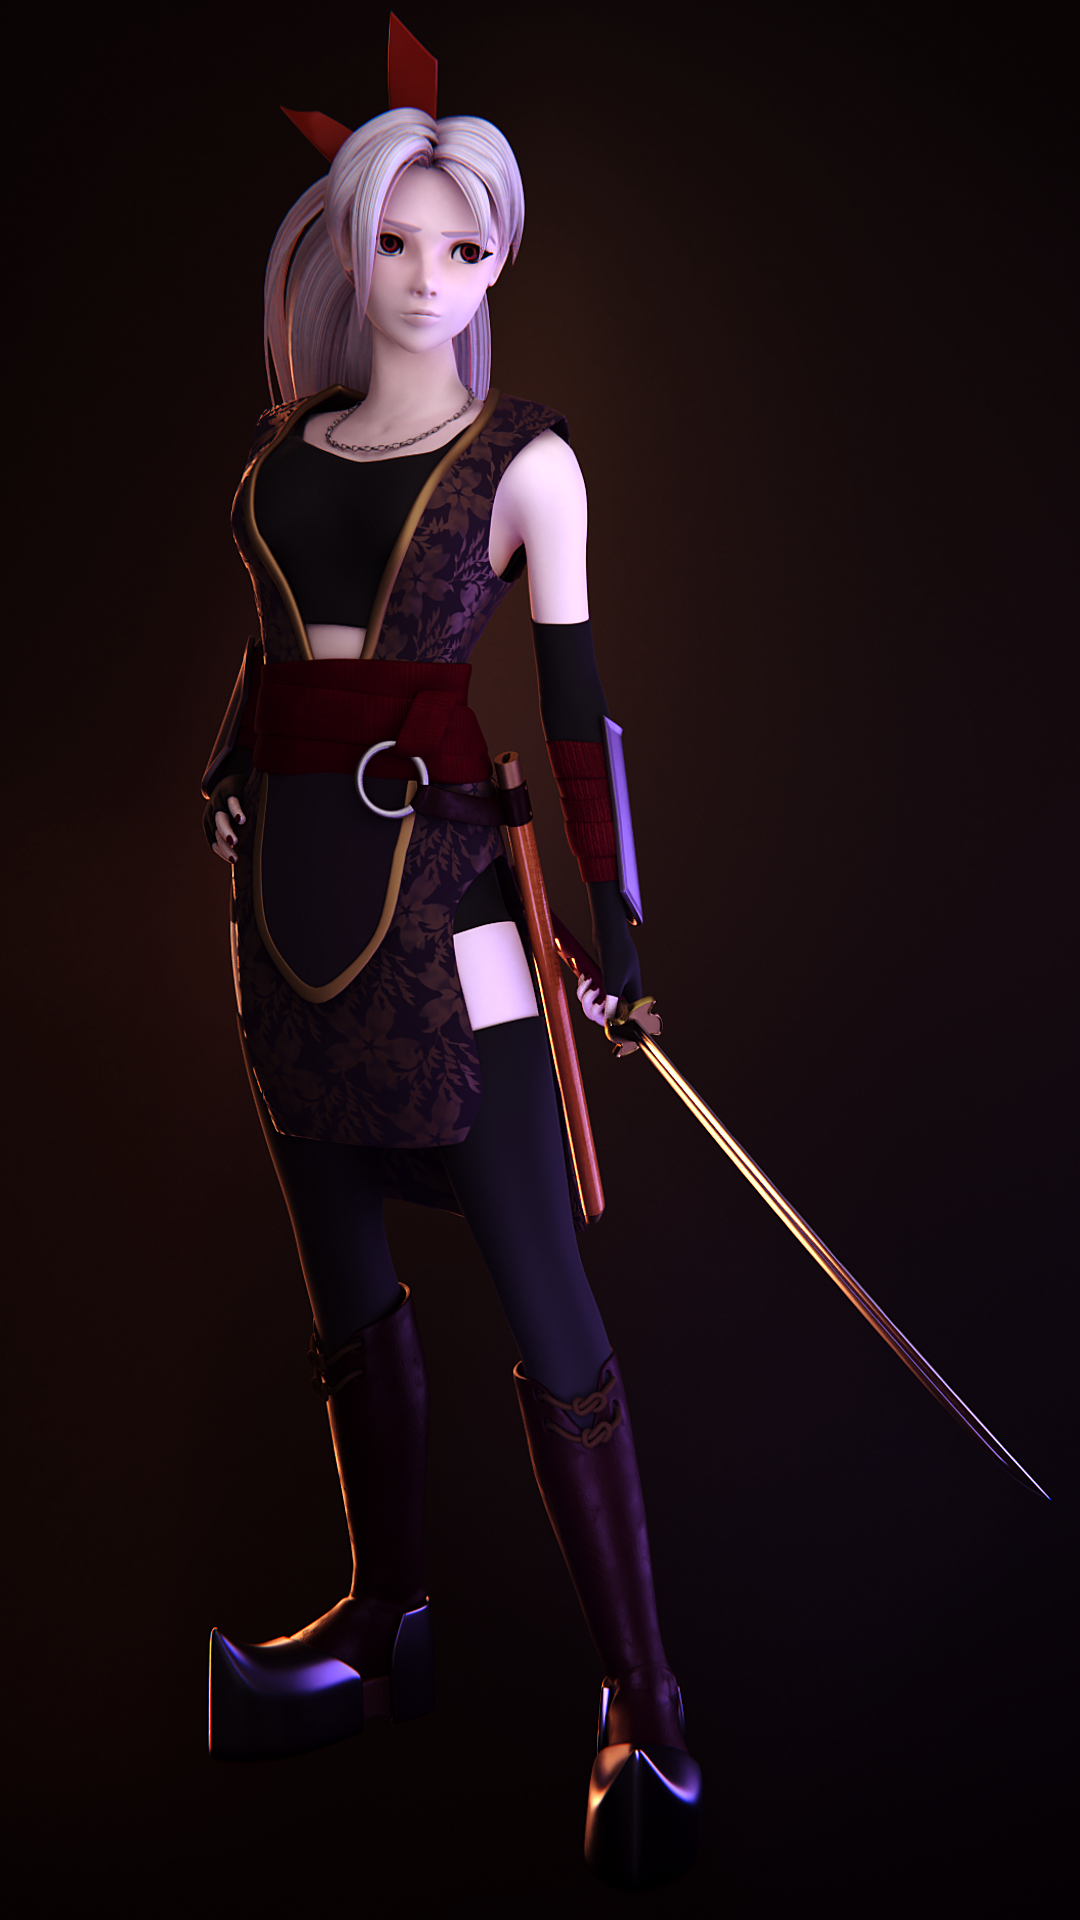 Stylized Female Warrior Character